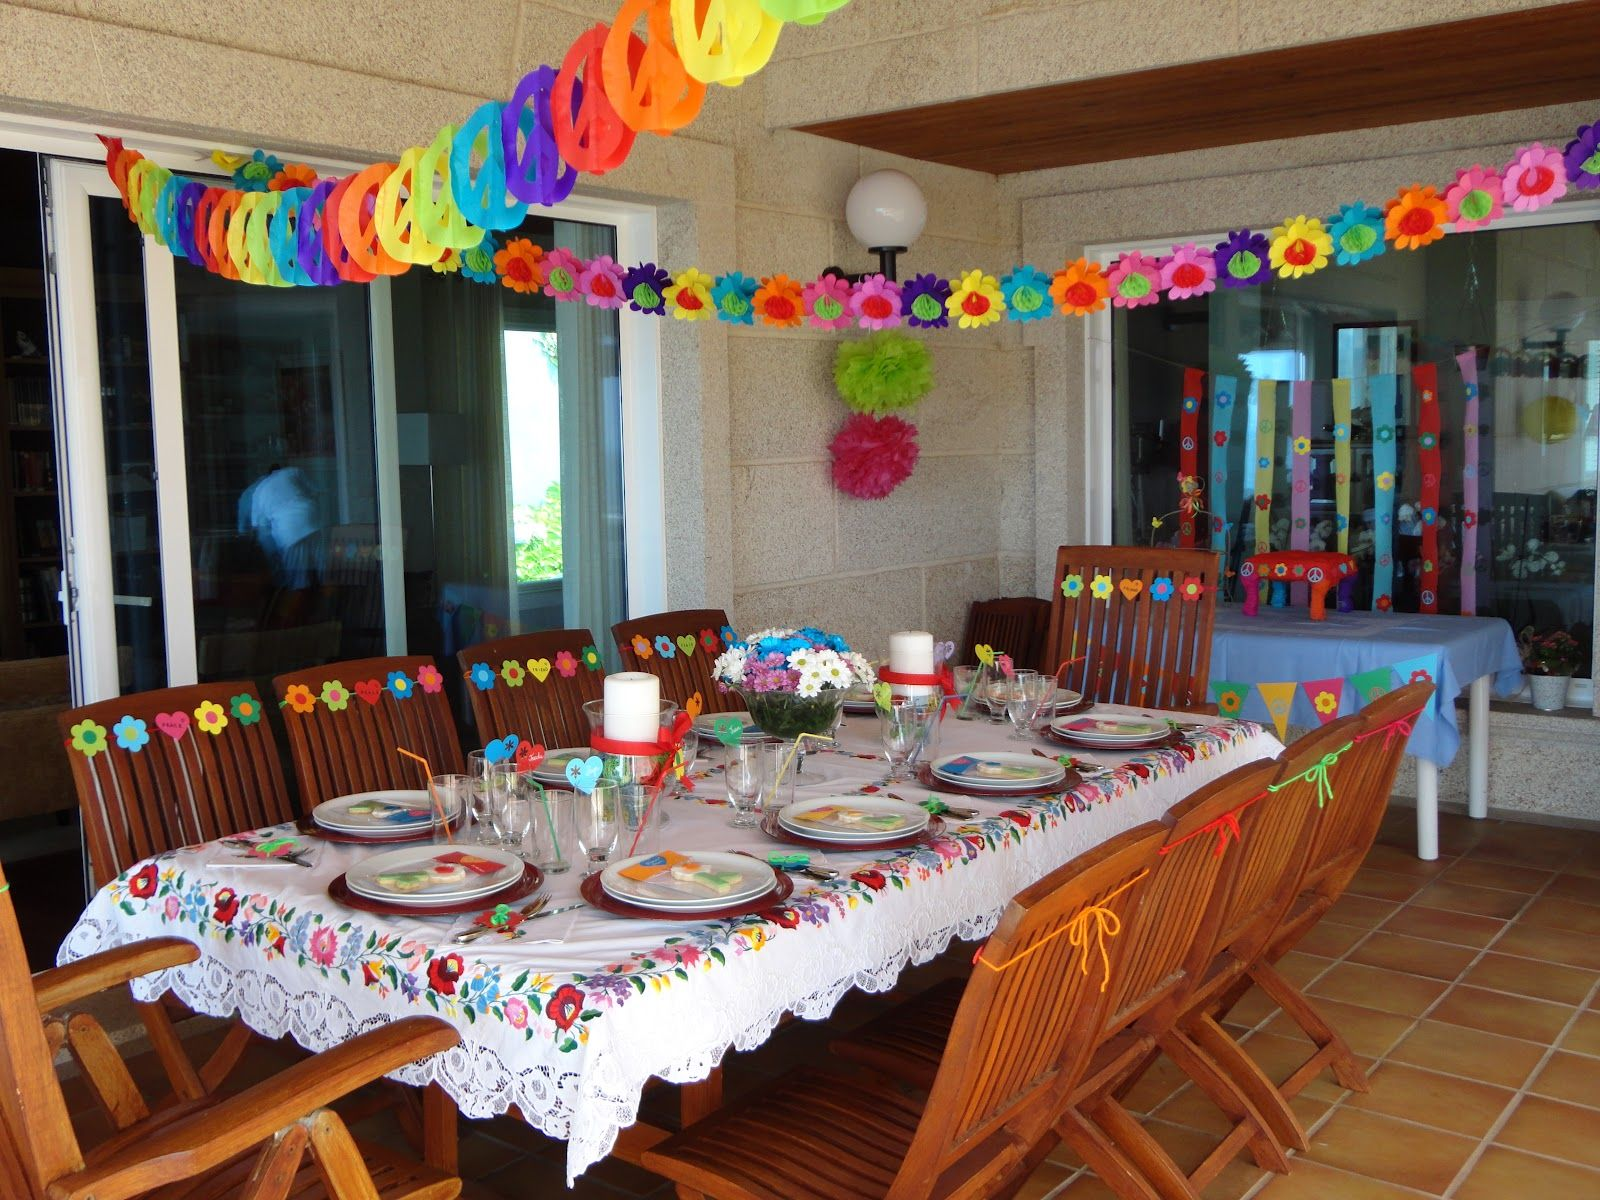 Decoraciones Hippies Fiesta Tematica Hippie Ideas Buscar Con Google Fiestas